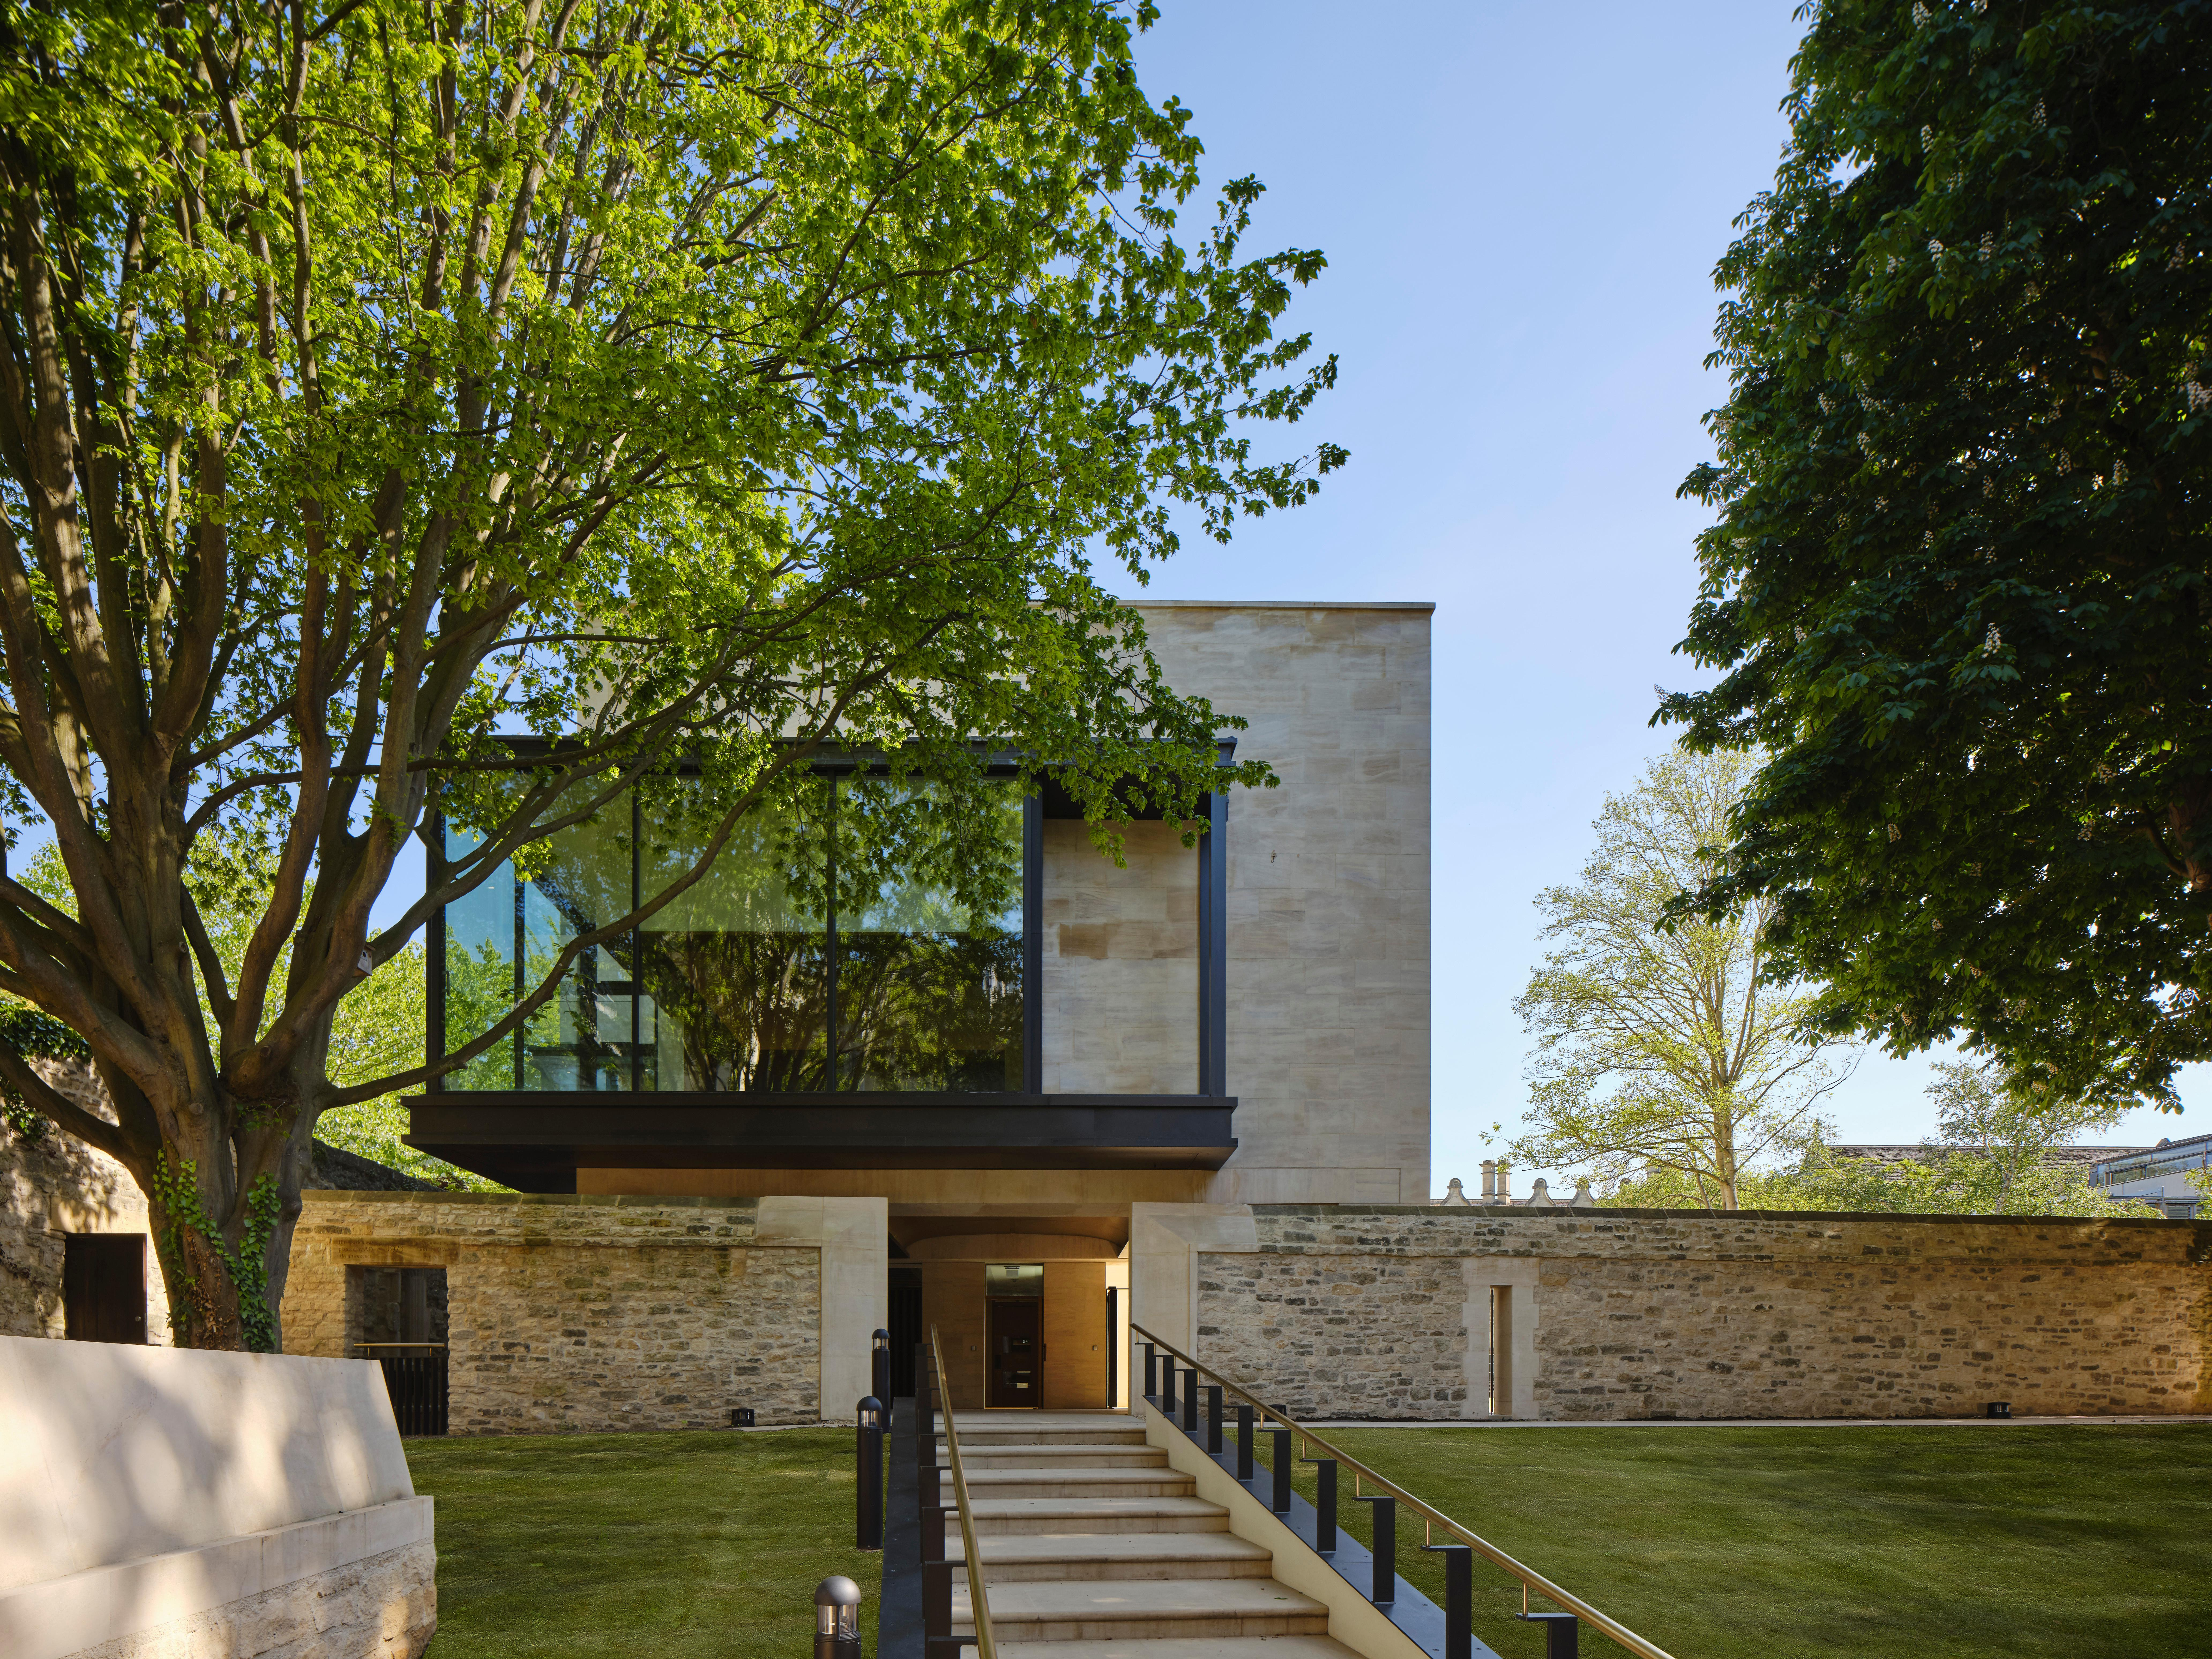 St John's College, Oxford library and study centre – a touch of mod in the quad